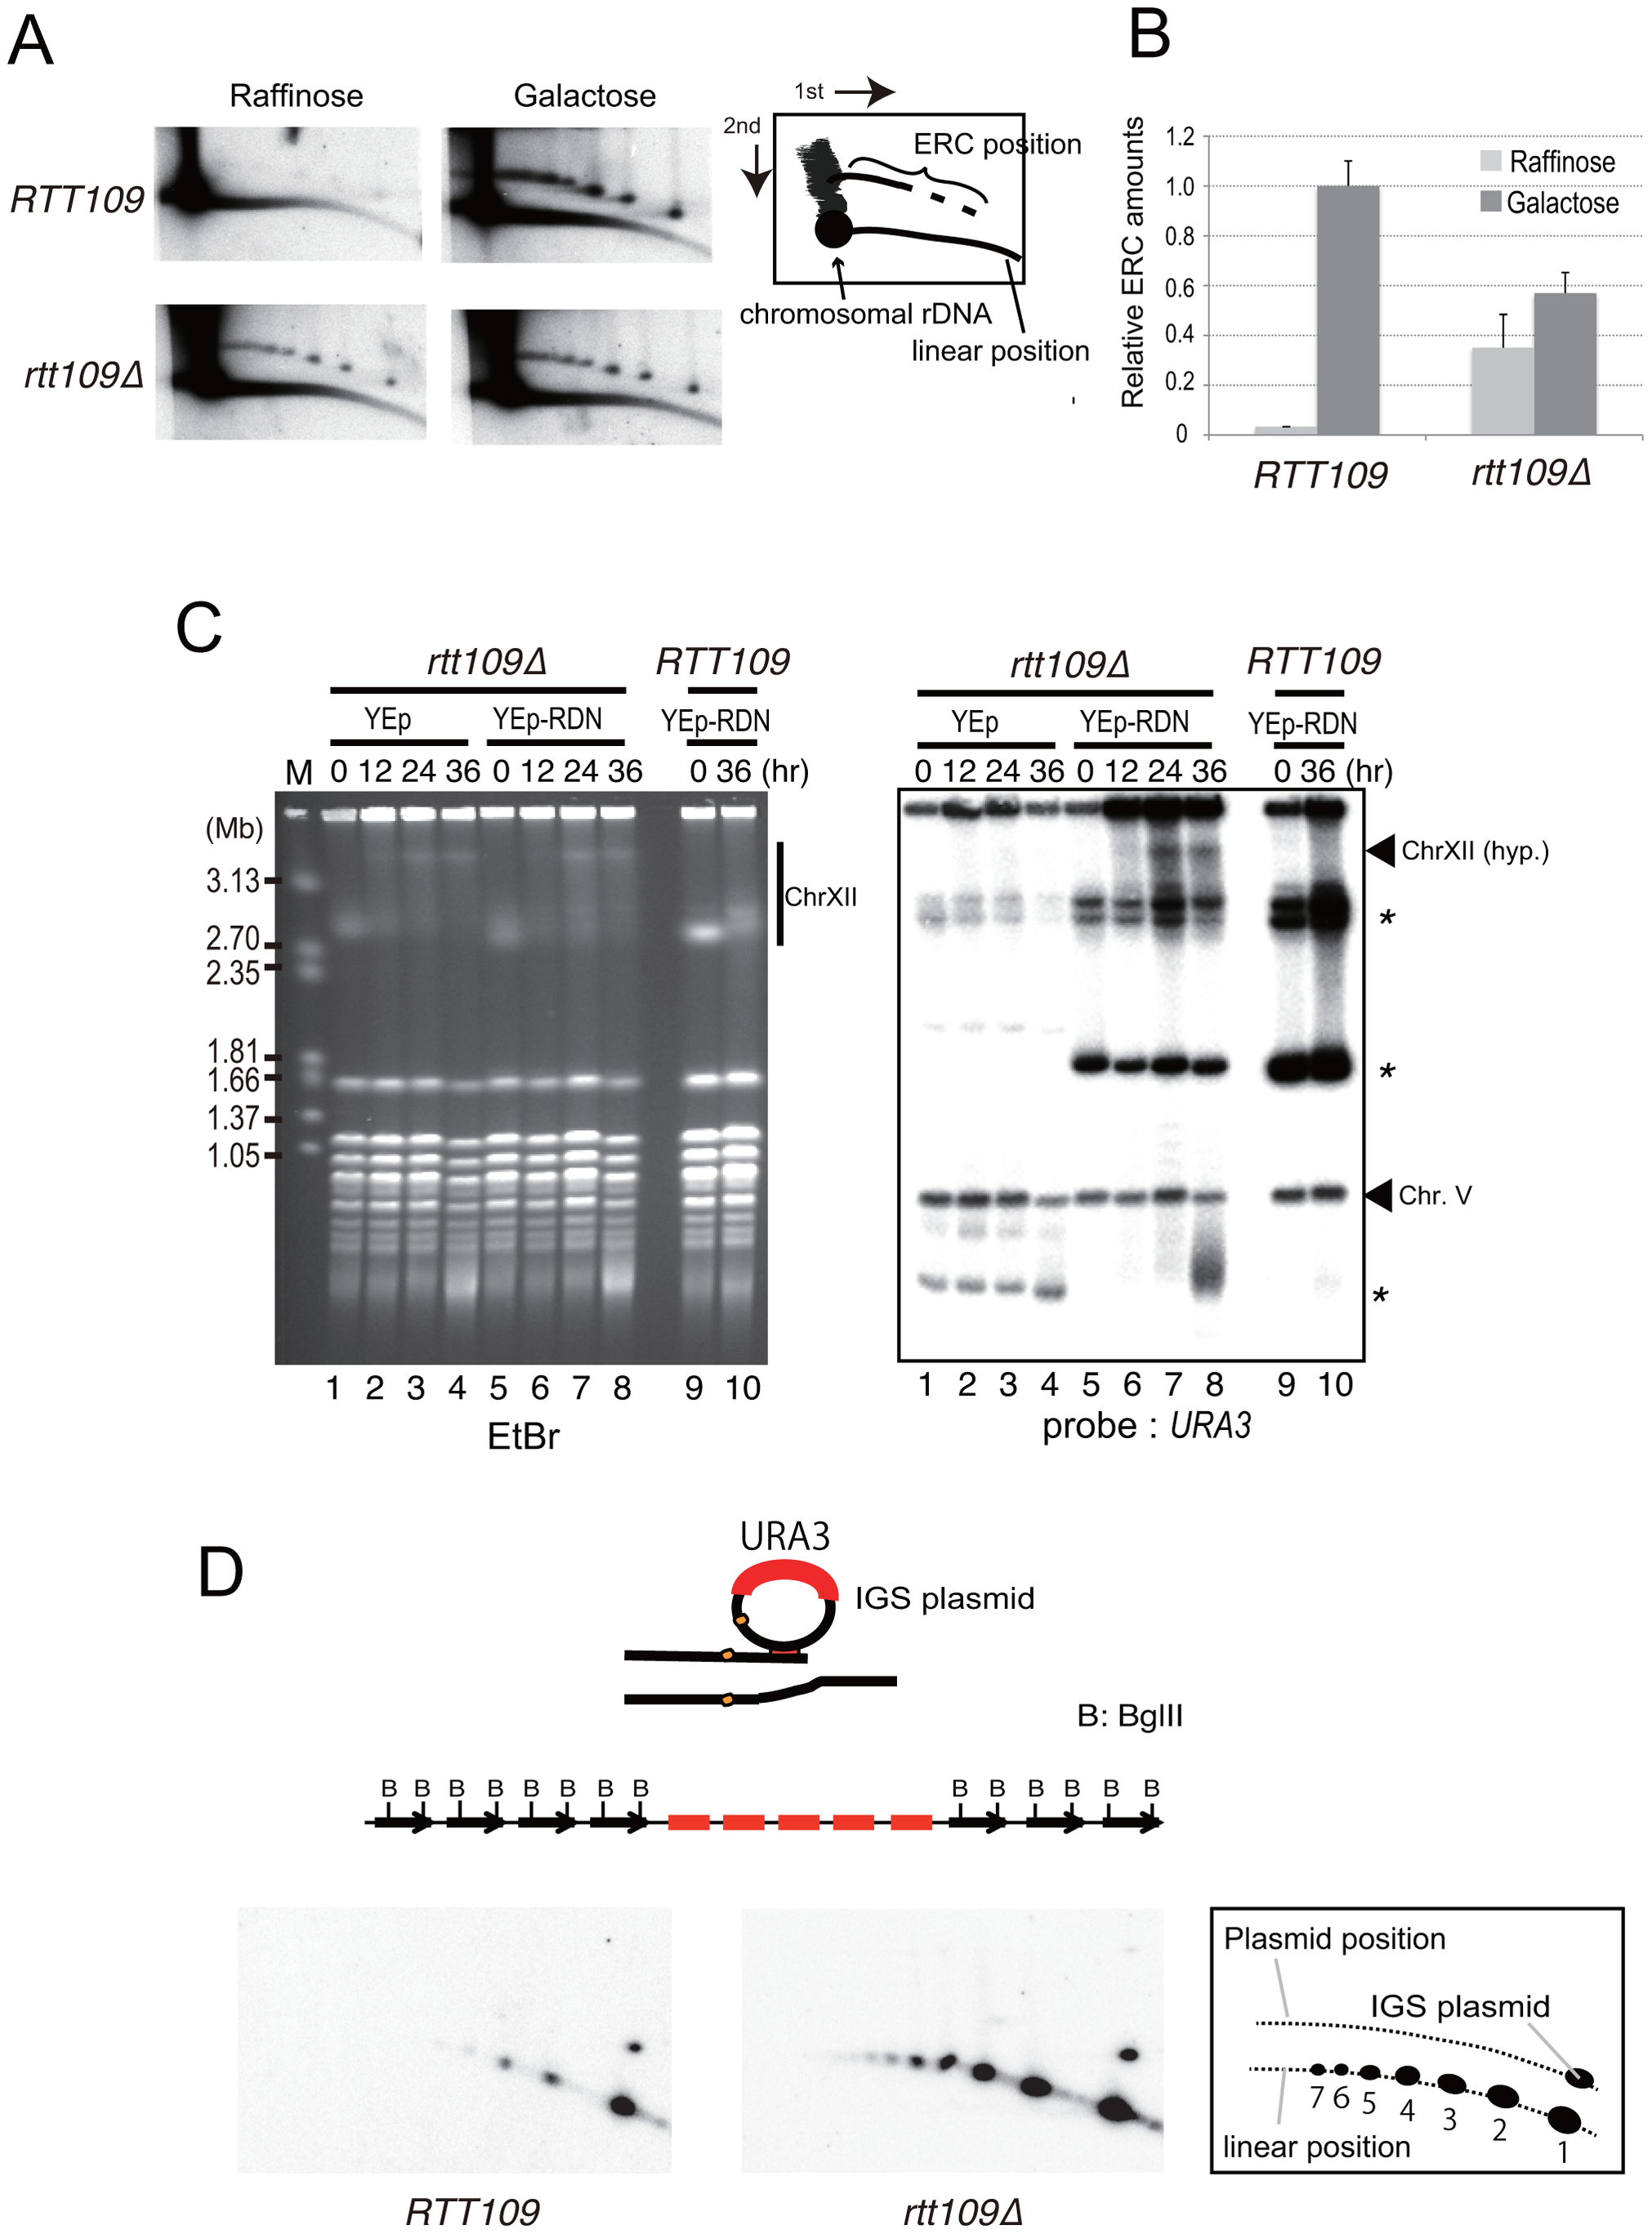 Less ERC is generated and multimeric ERC integrates into rDNA during hyper-amplification.